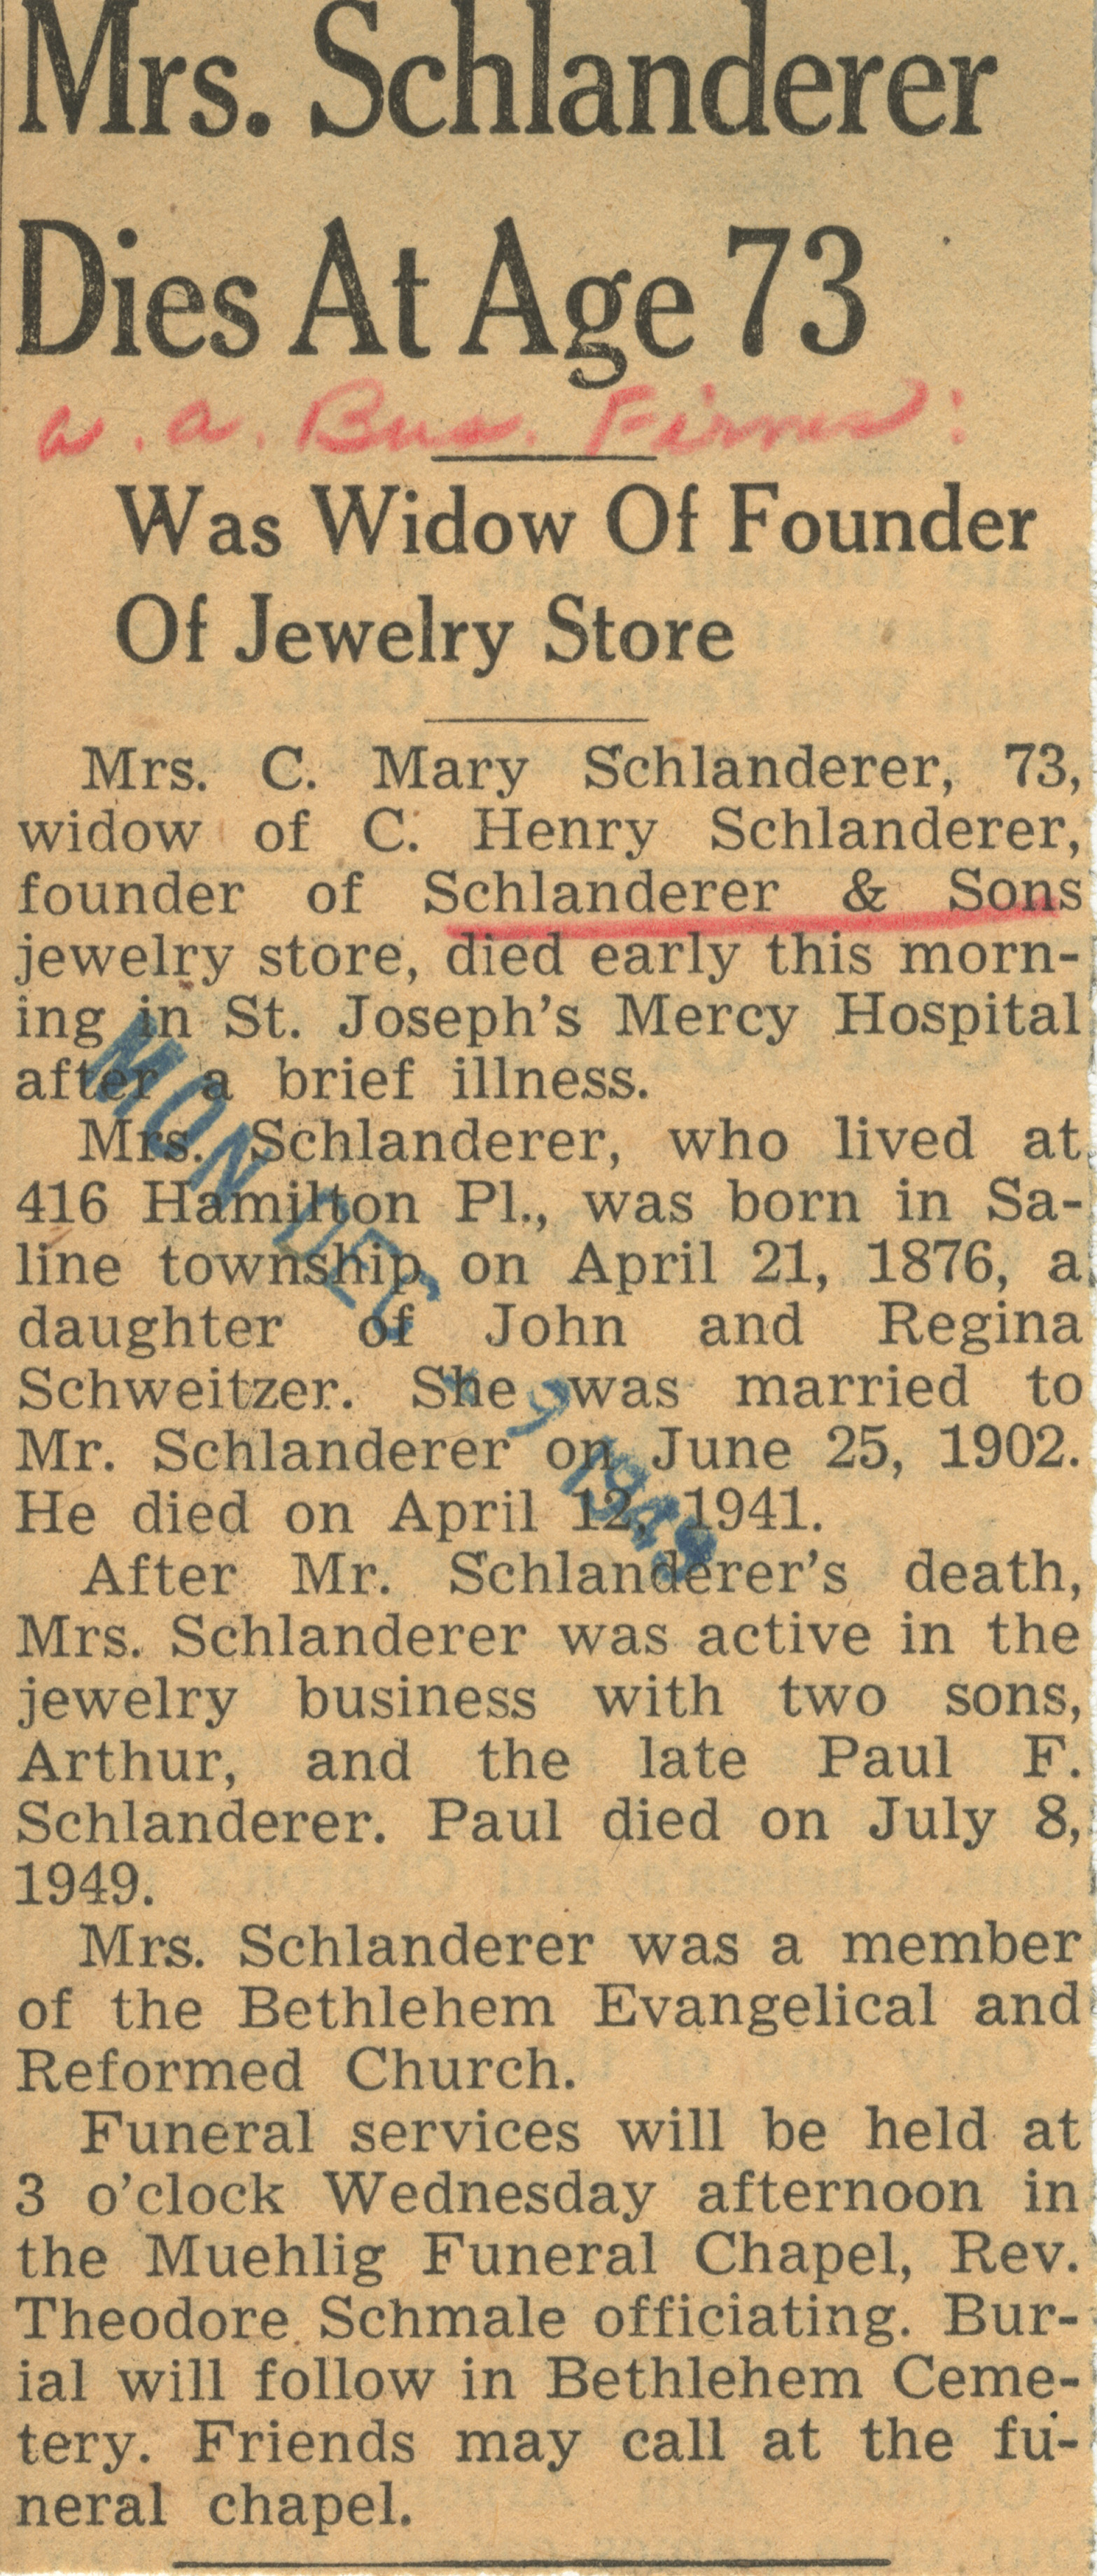 Mrs. Schlanderer Dies At Age 73 image